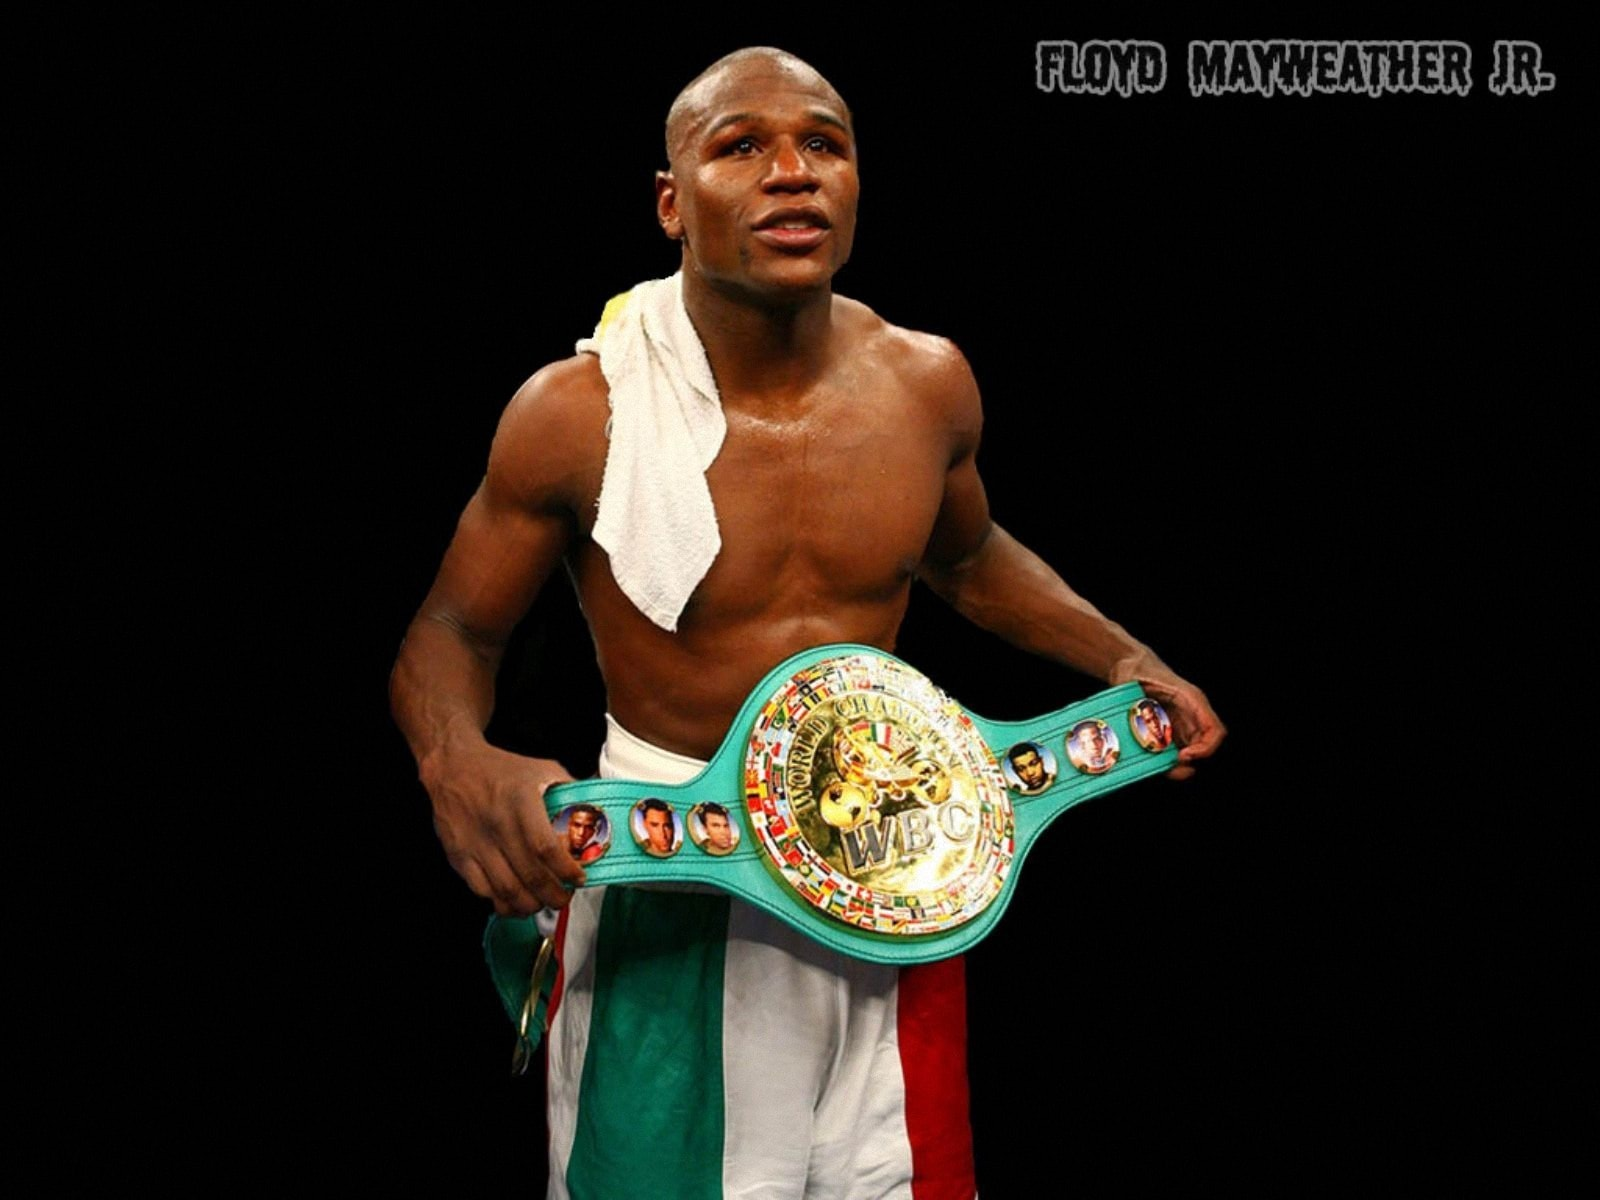 Floyd Mayweather, Jr. Background